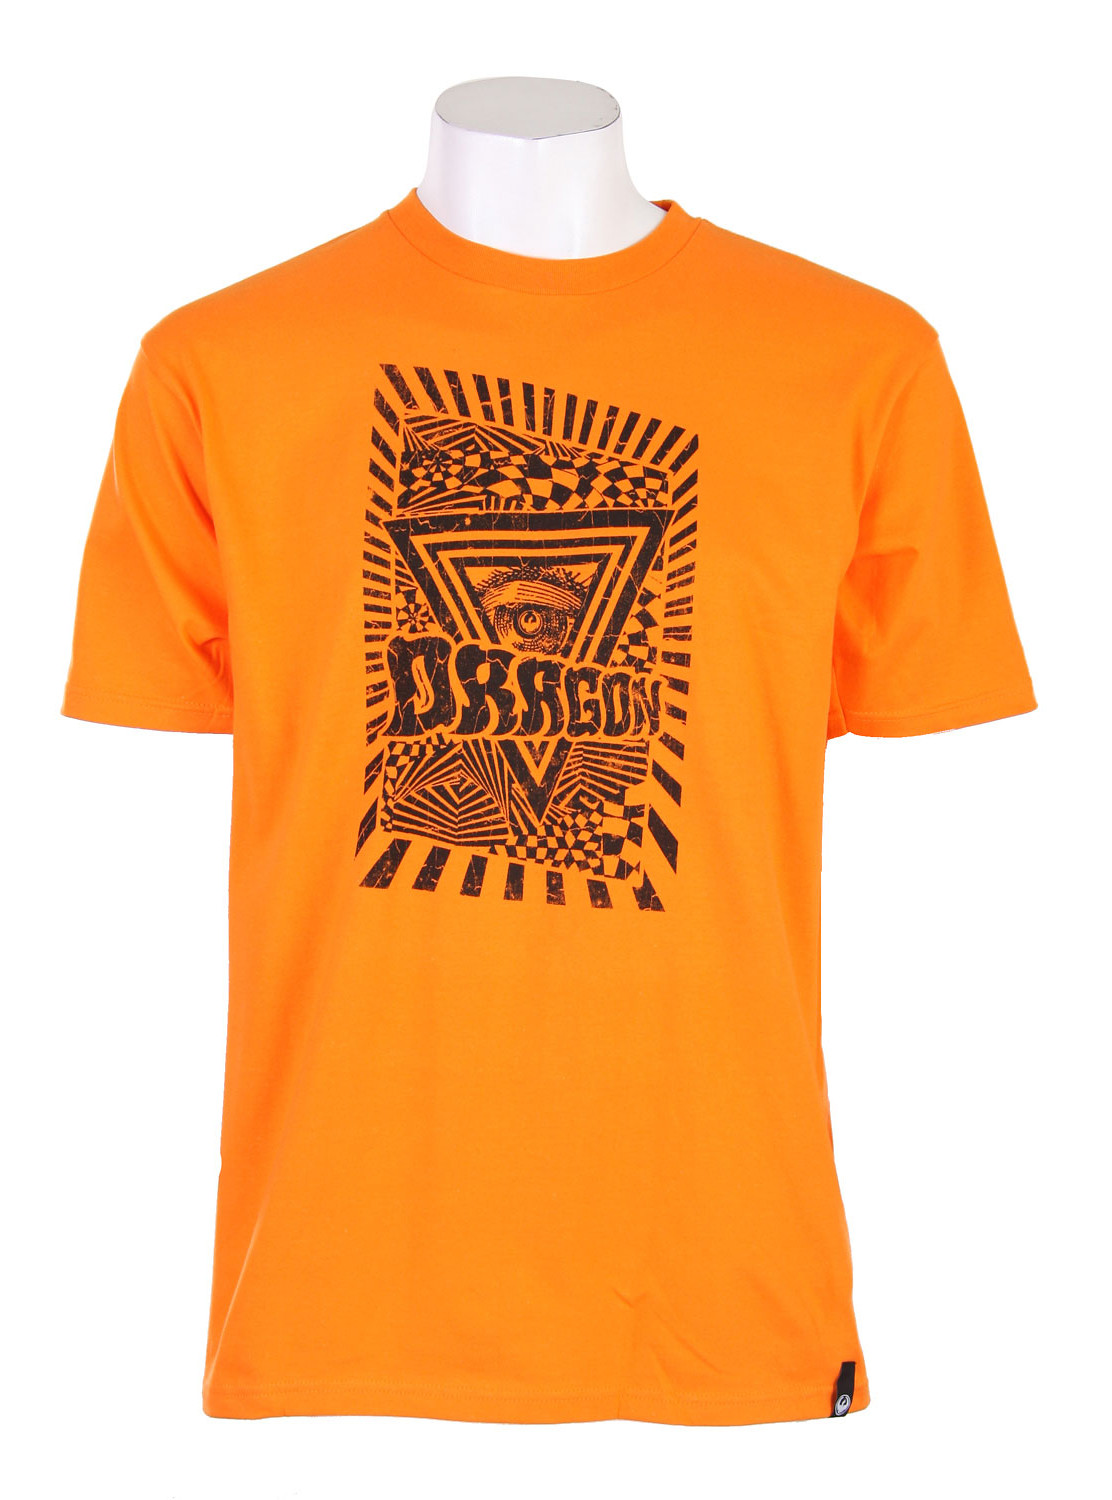 Dragon Minds Eye T-Shirt Orange  dragon-orng-t-blk-09.jpg